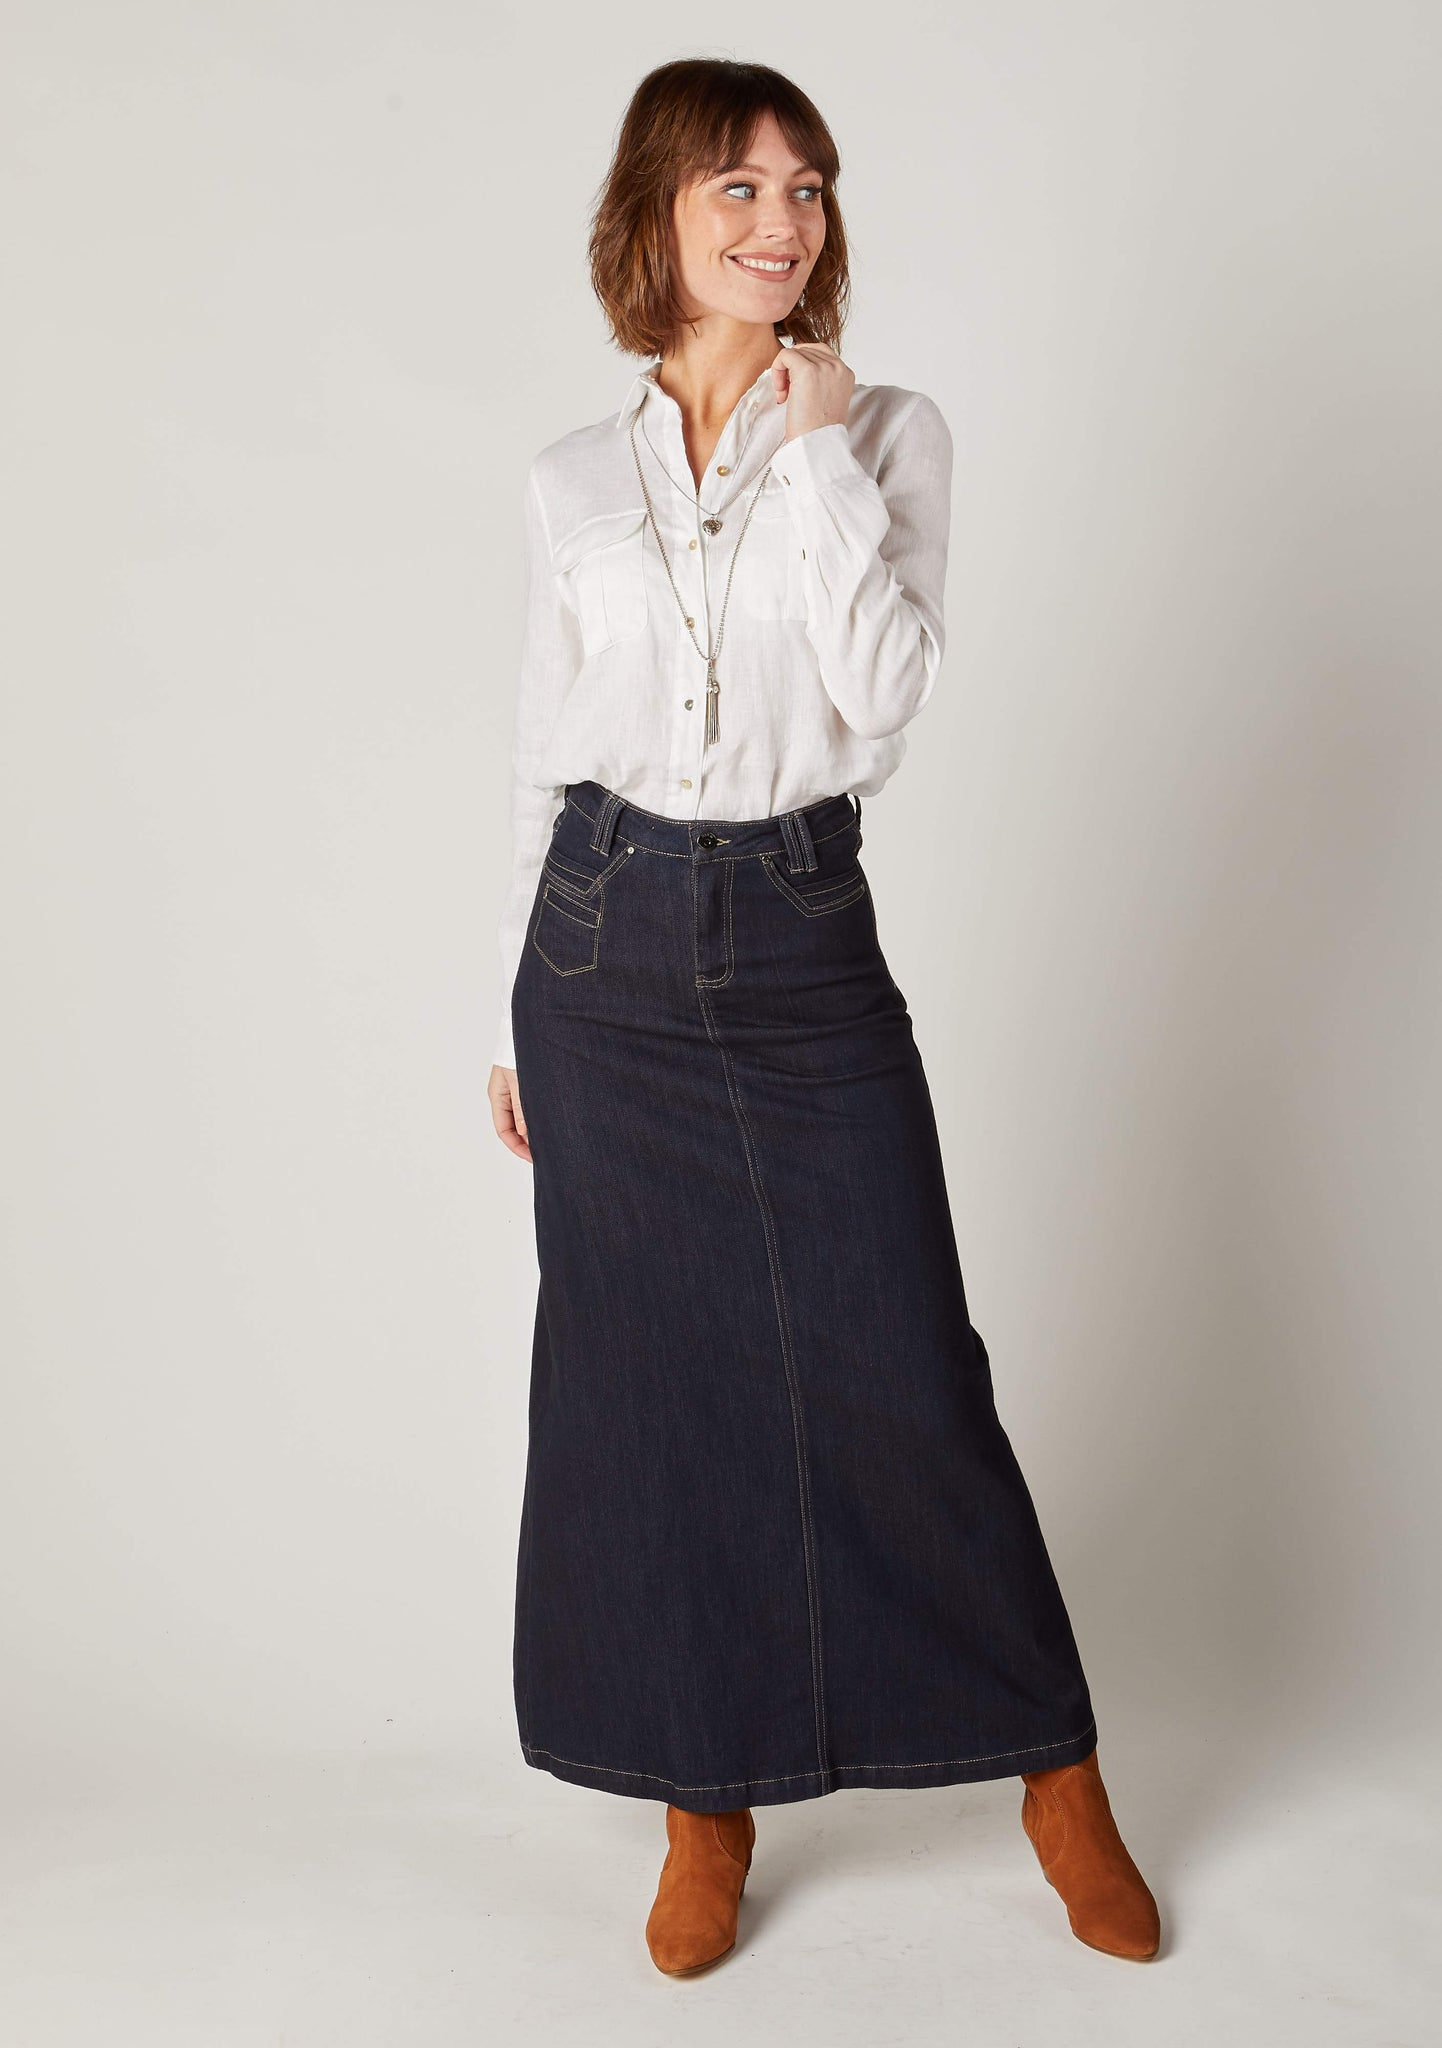 Full length front view of stretchy dark cotton, ankle length denim skirt.